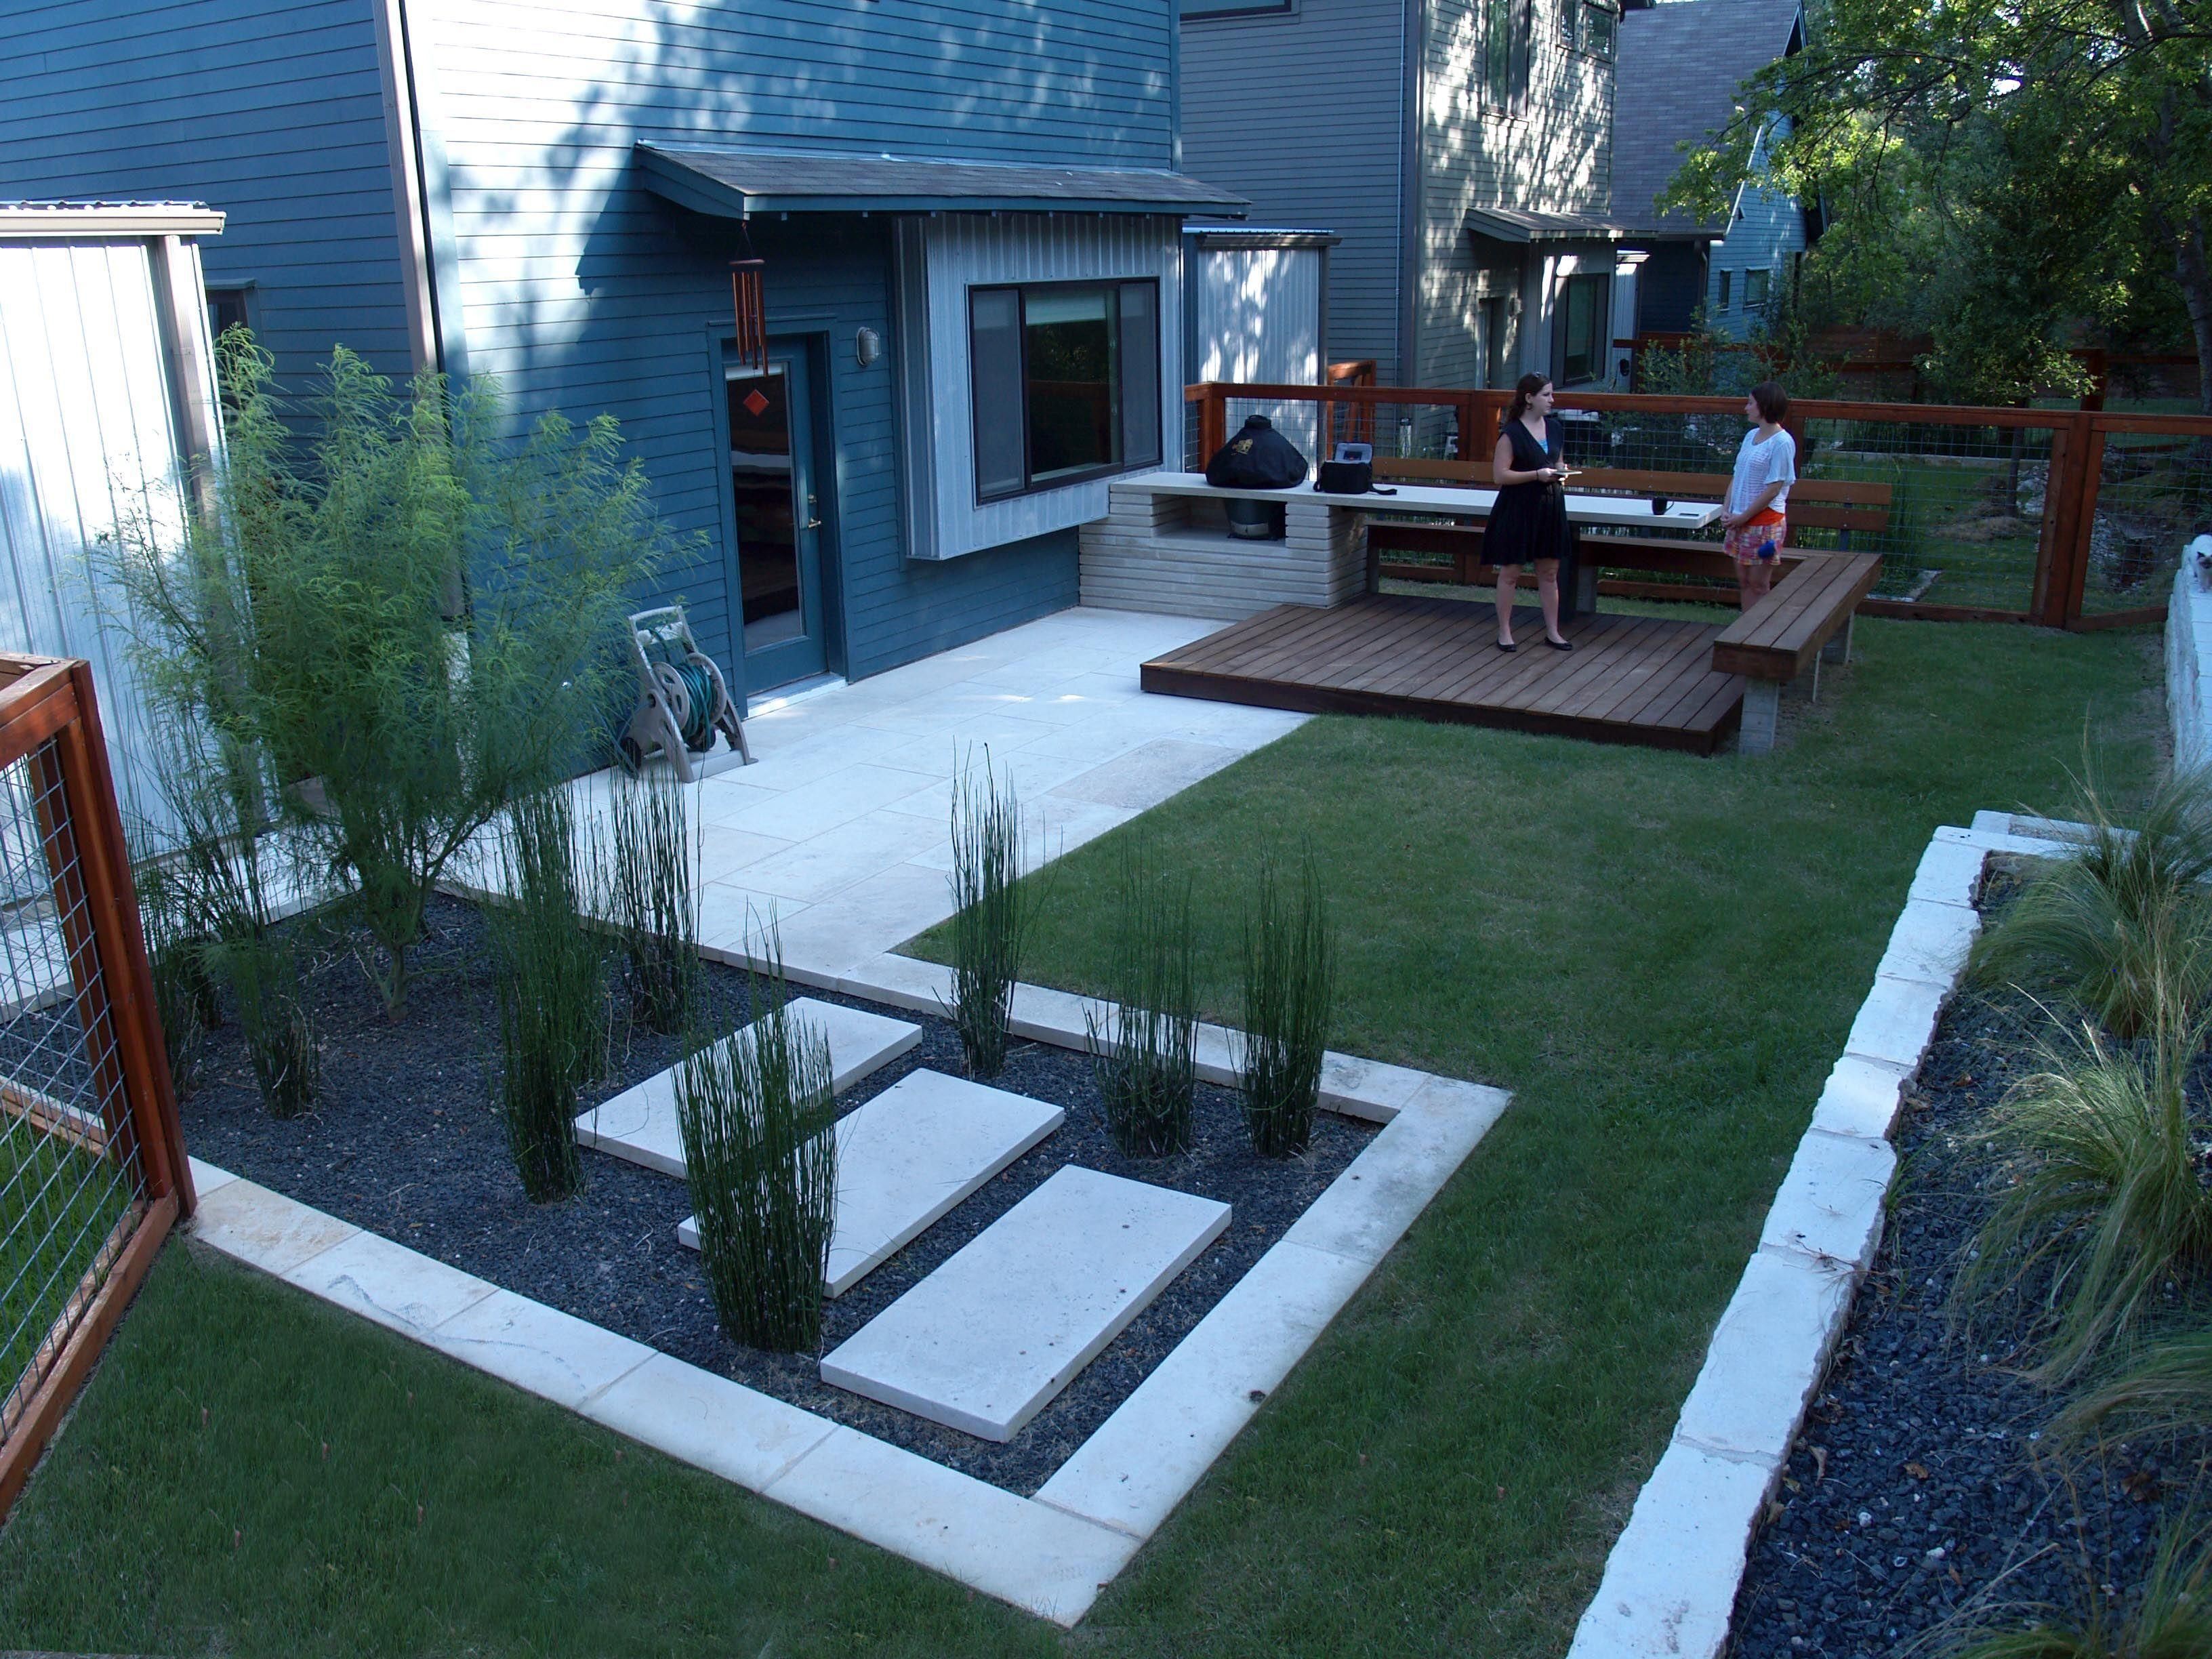 Backyard Landscaping On A Budget Outdoor Areas Unique Backyard Landscaping On A Budget Outdoor Areas Backyard Designs Ideas Small Backyard Design Modern Backyard Design Small Yard Landscaping